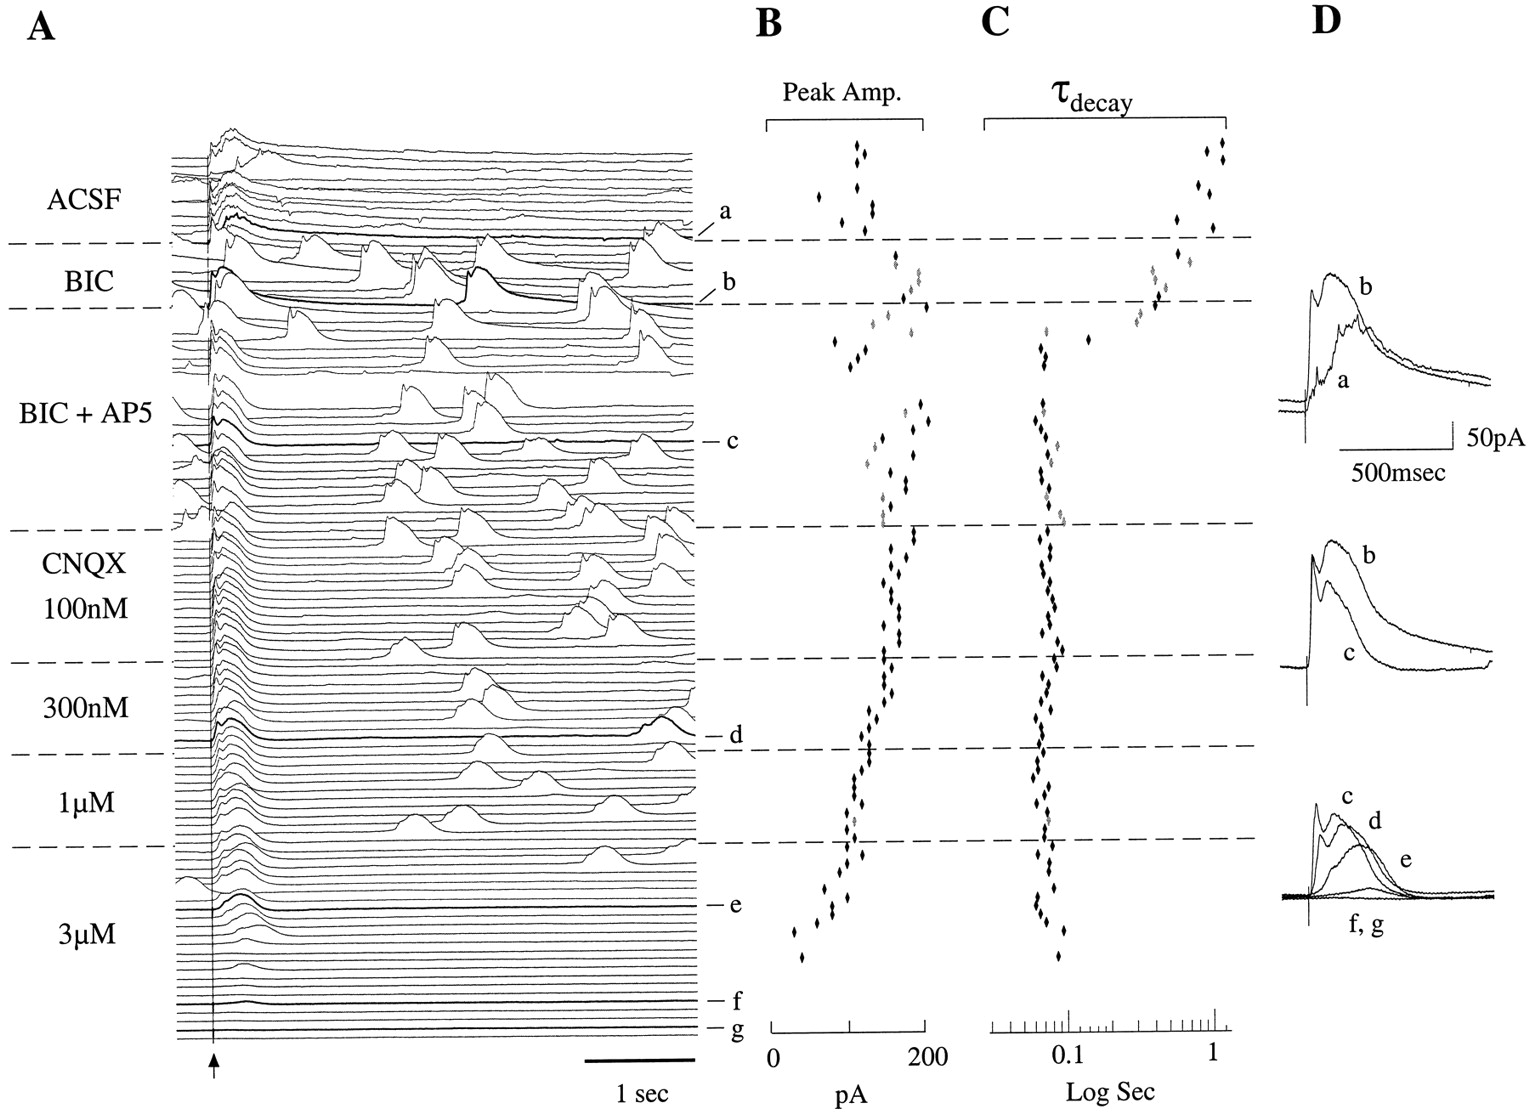 Long-Lasting Depolarizations in Mitral Cells of the Rat